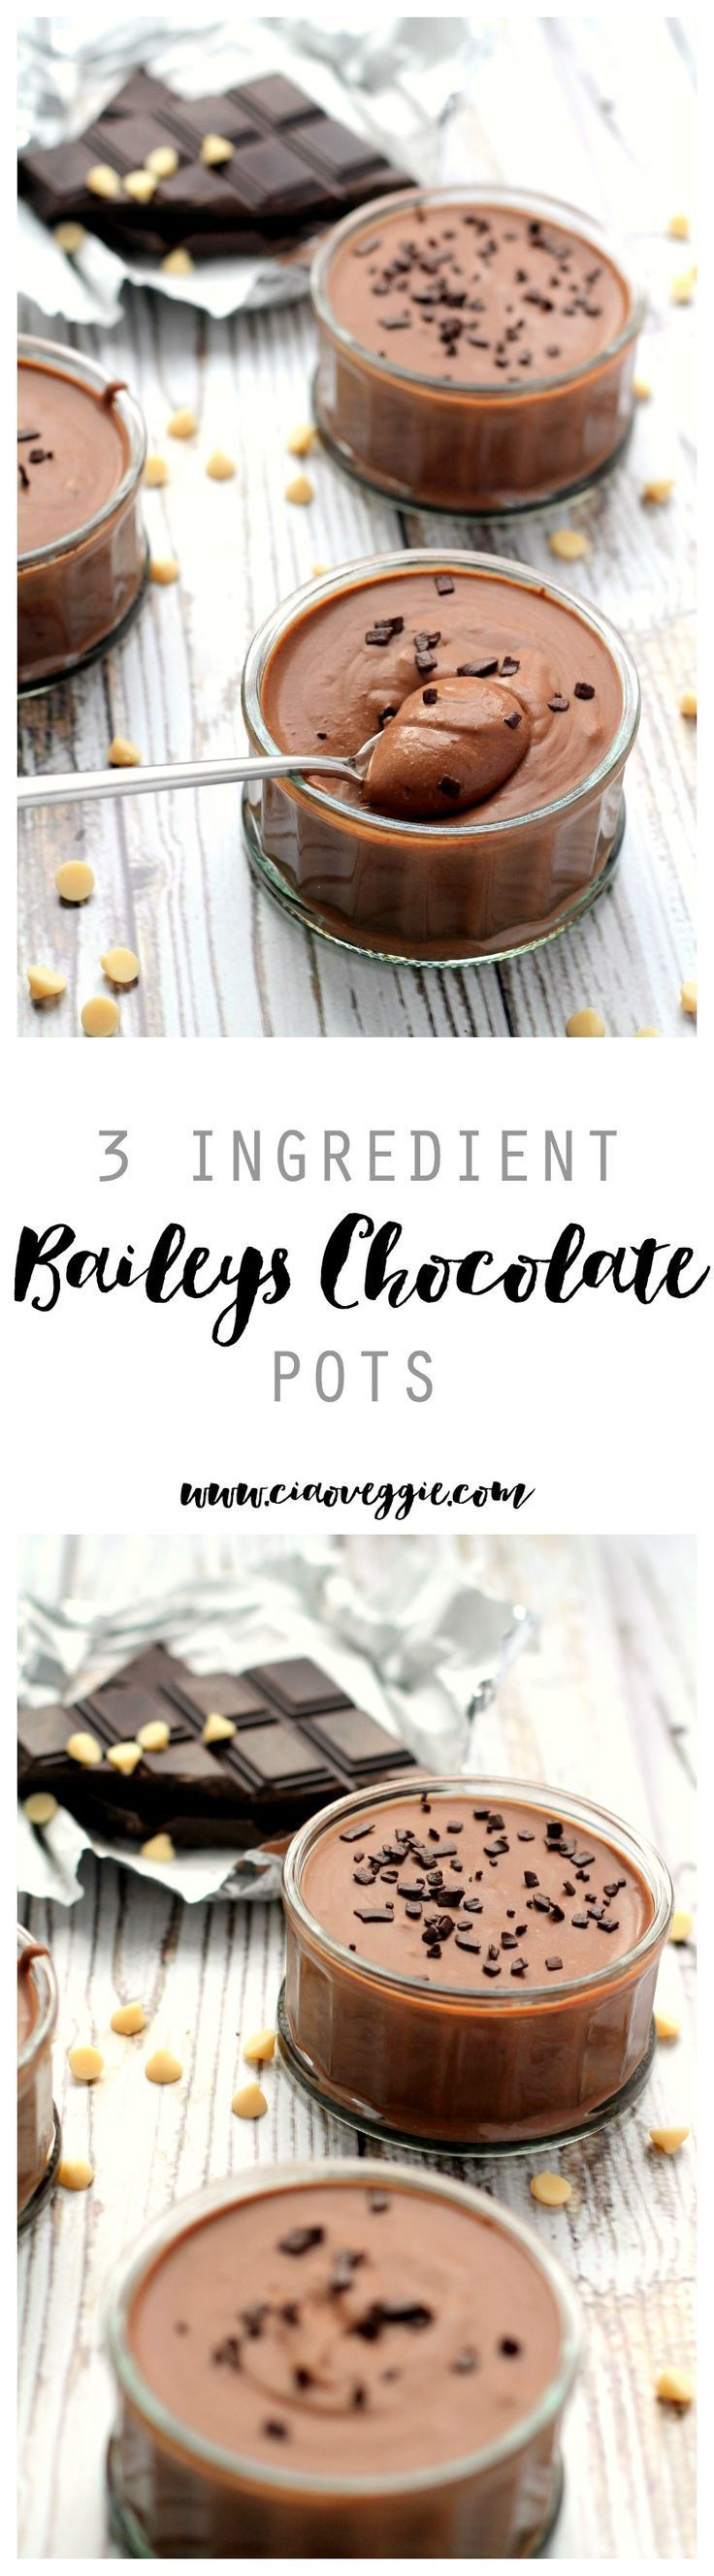 Easy peasy Baileys Chocolate Pots! This is a 3 ingredient dessert to impress. I make it super boozy, but you can tone it down if you like!